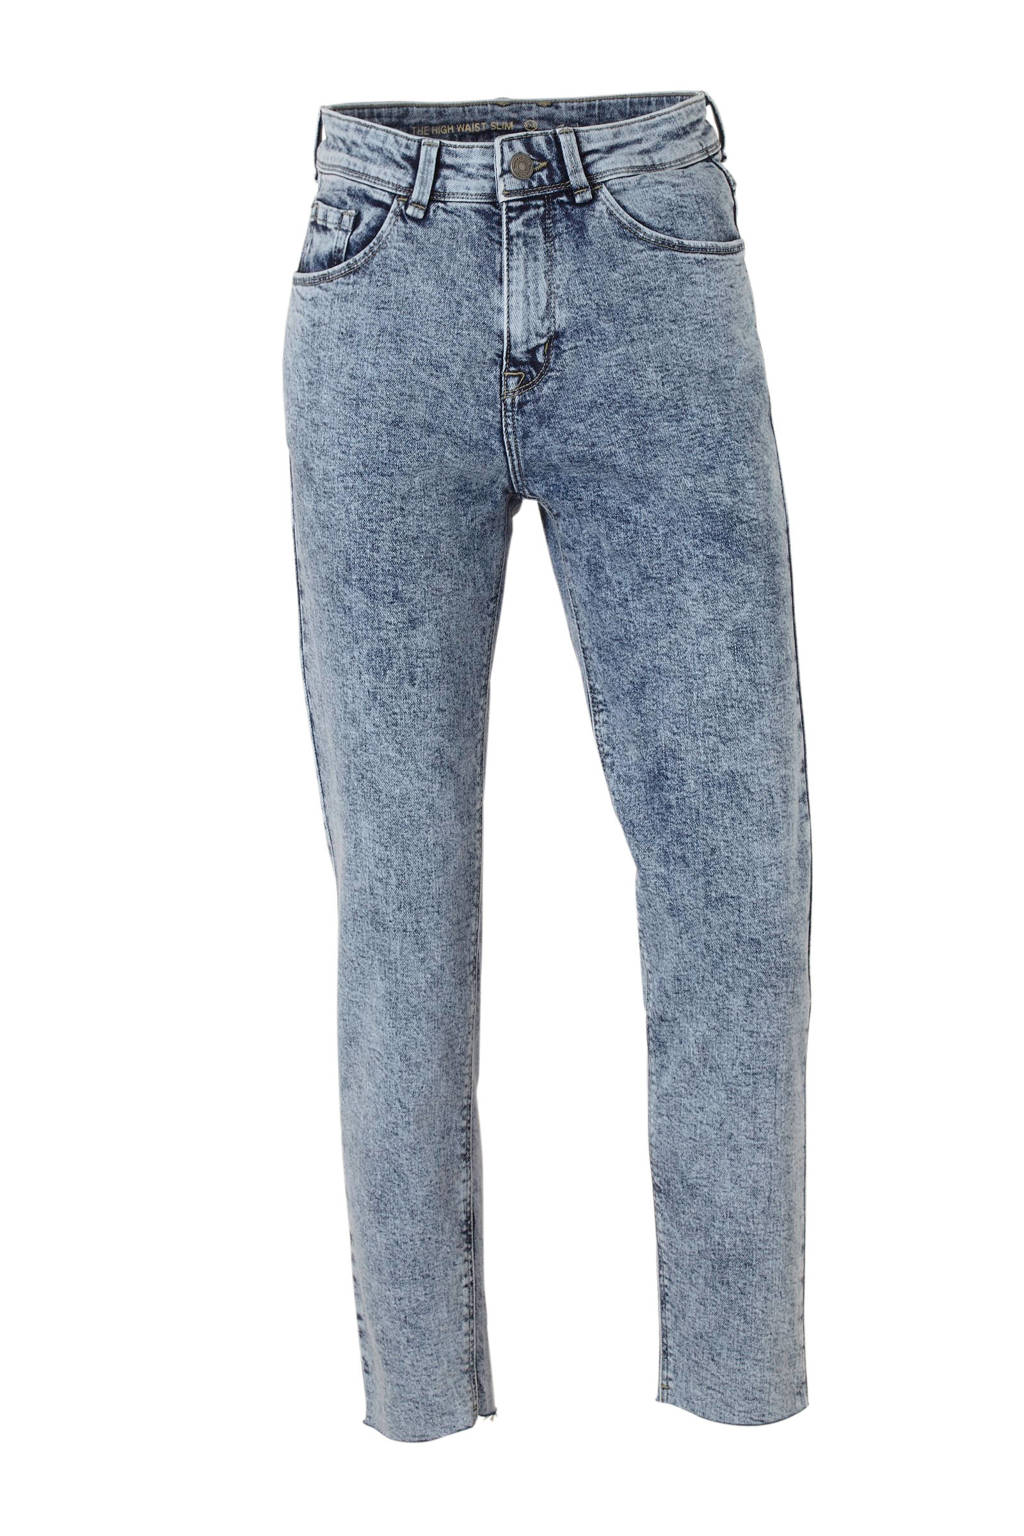 C&A Yessica cropped high waist slim fit jeans, Light denim